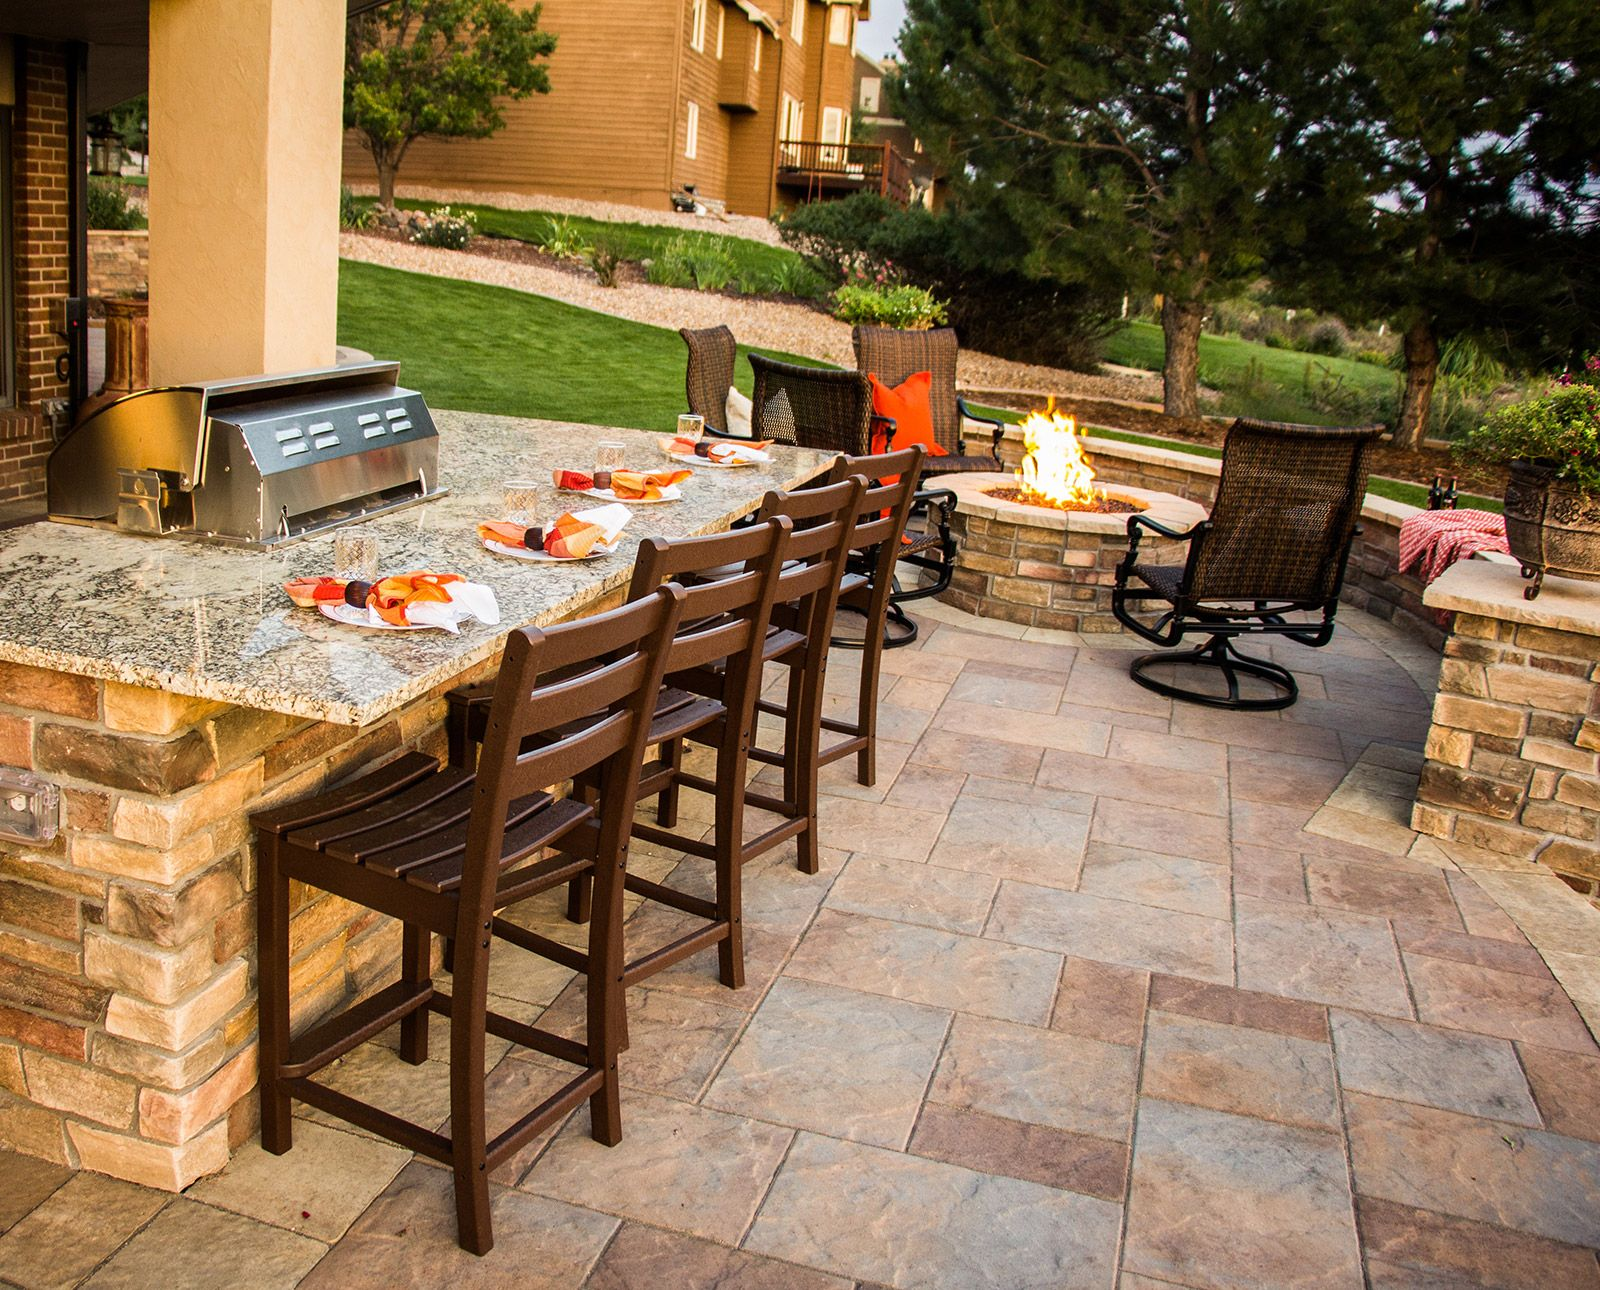 Outdoor Living Spaces & Structures - Elite Landscape ... on Elite Landscape And Outdoor Living id=27272